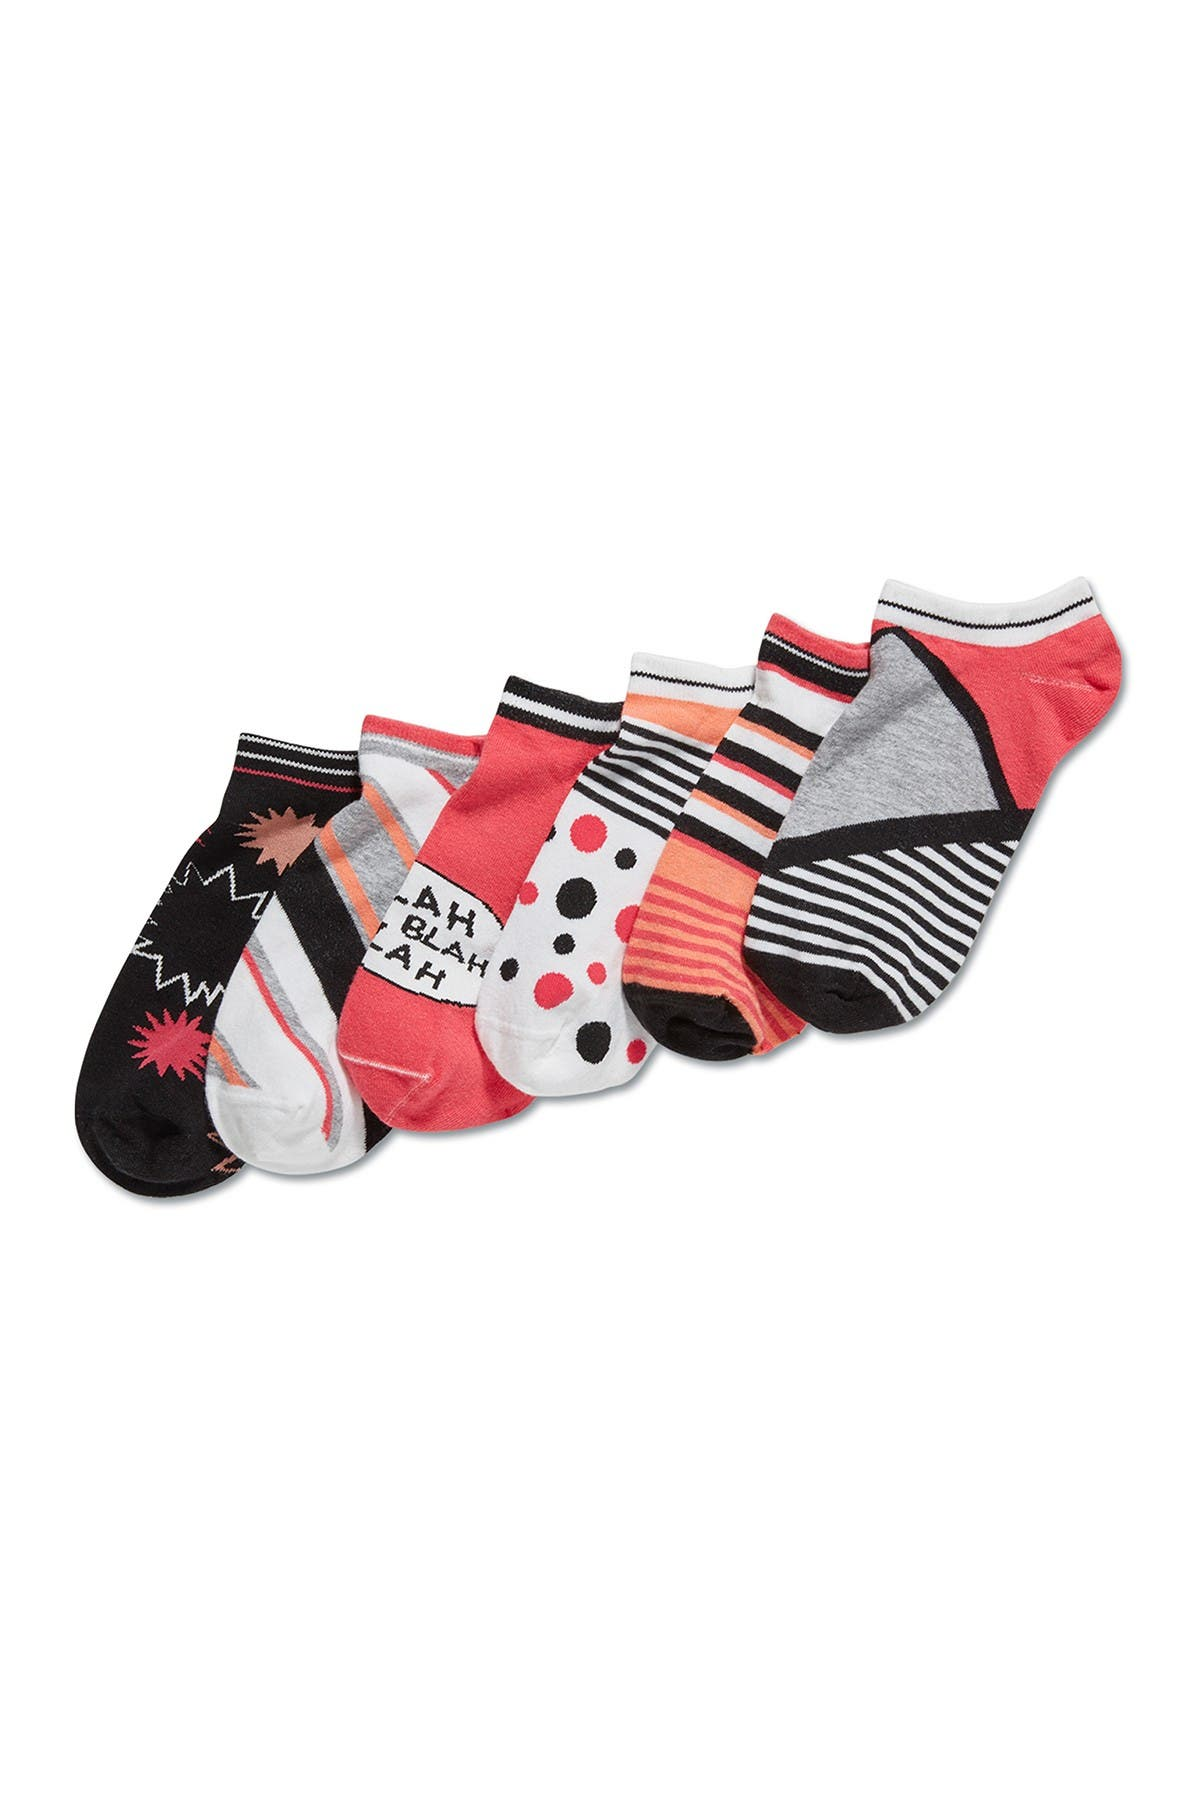 Image of HUE Mix & Match Low Cut Socks - Pack of 3